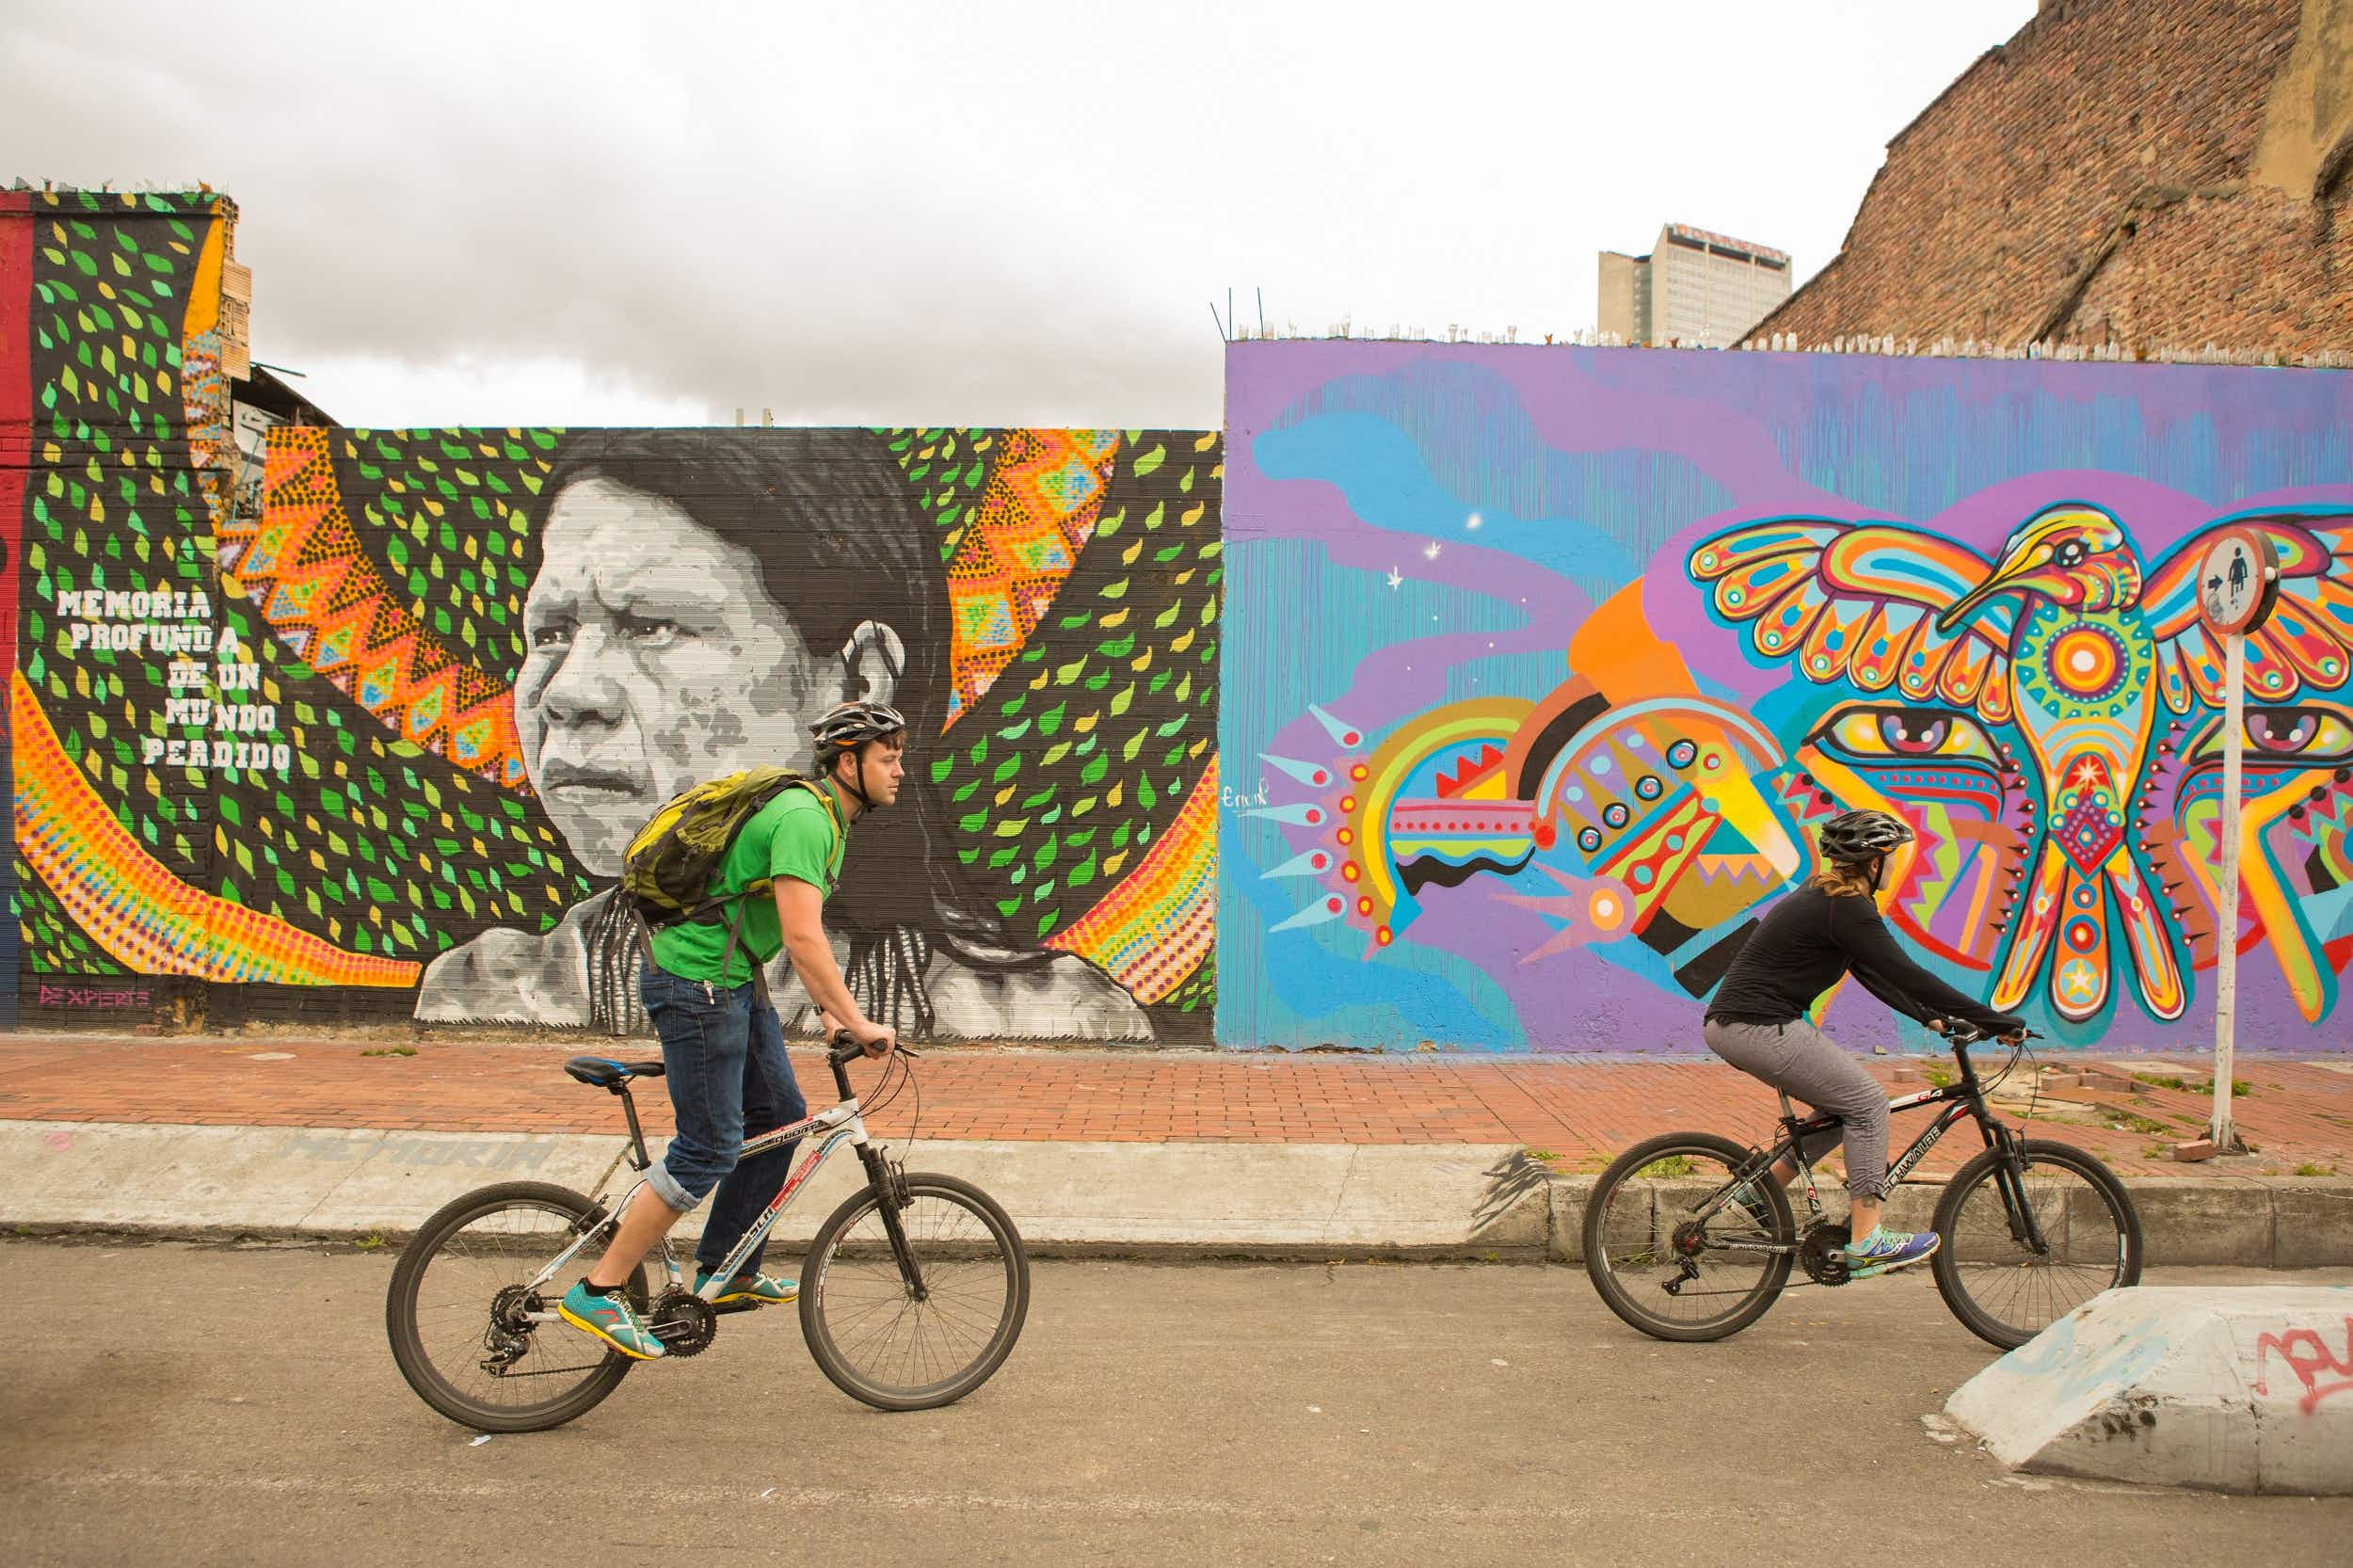 Cyclovia provides a great way of seeing some of Bogotá's best sights, such as its world-renowned street art © Kris Davidson / Lonely Planet